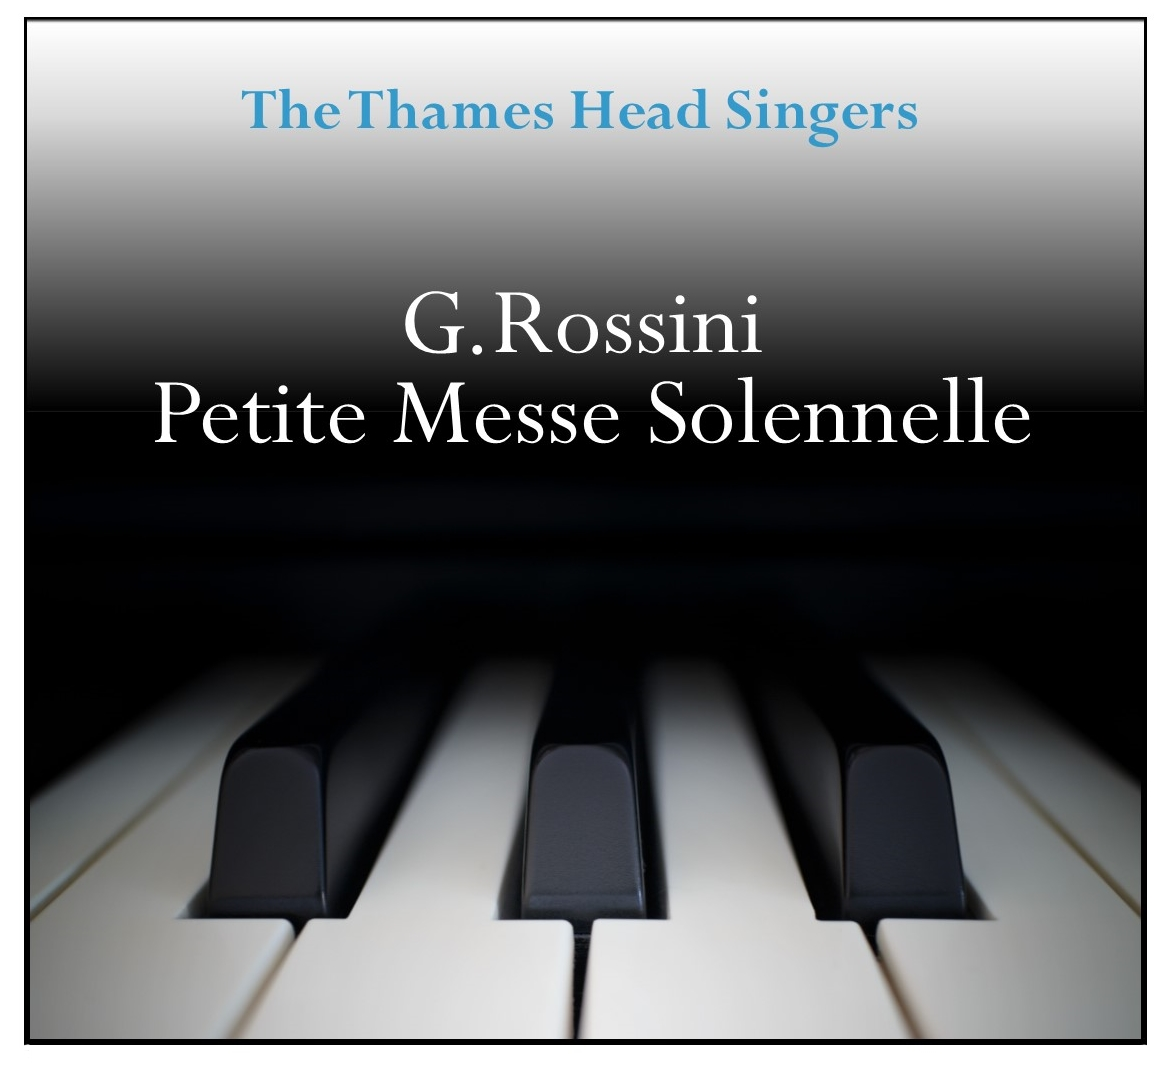 G.Rossini, Petite Messe Solennelle  sung by the Thames Head Singers and invited soloists